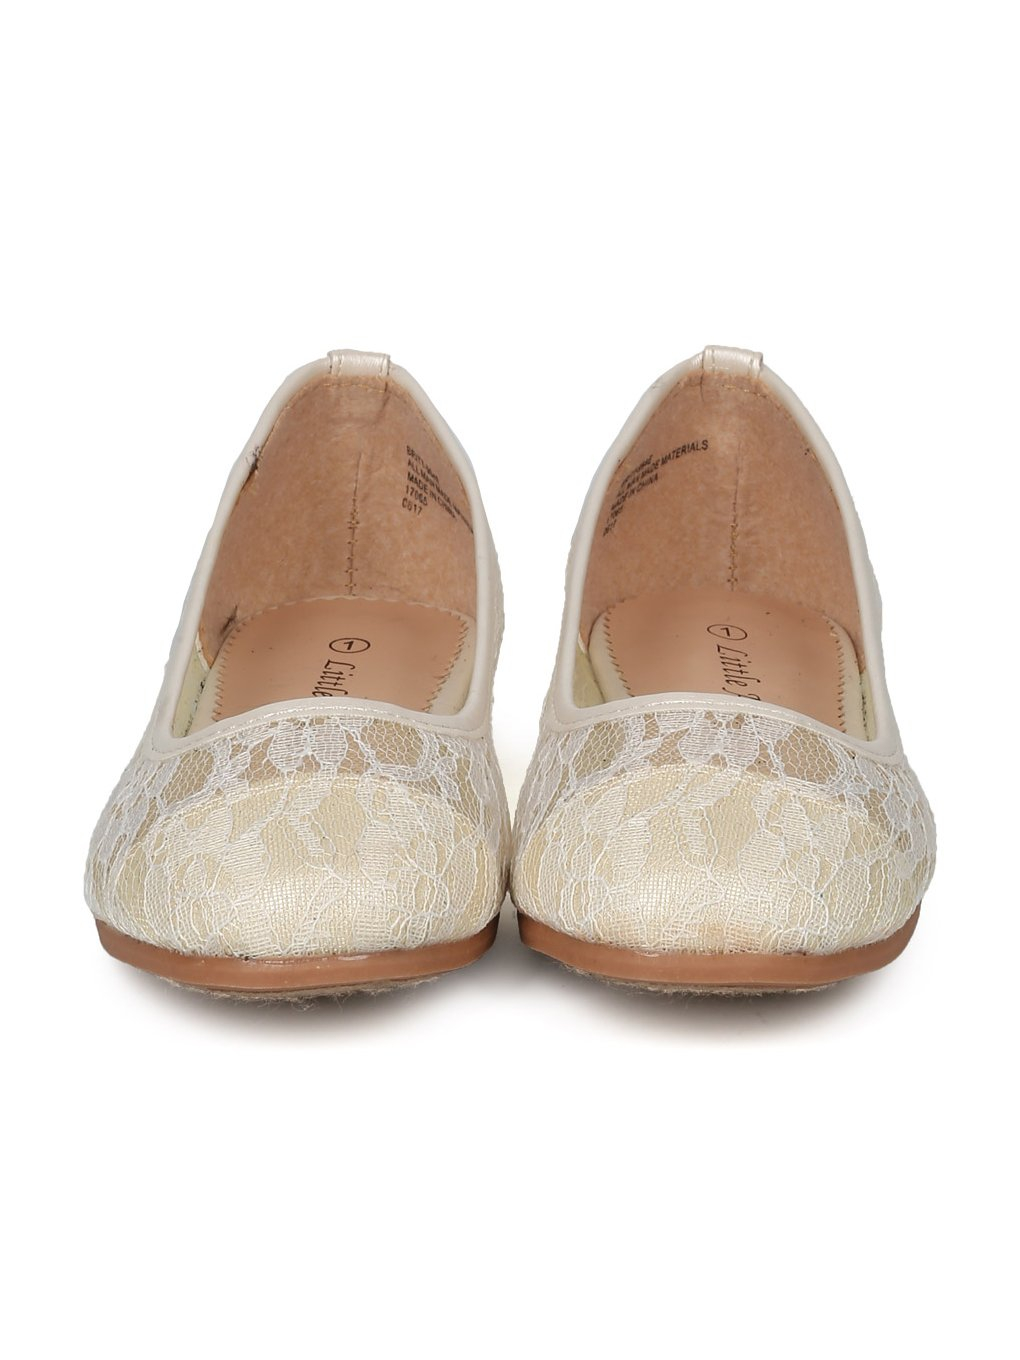 Alrisco Lace Mesh Capped Toe Ballet Flat HF24 - Ivy Mix Media (Size: Big Kid 4) by Alrisco (Image #4)